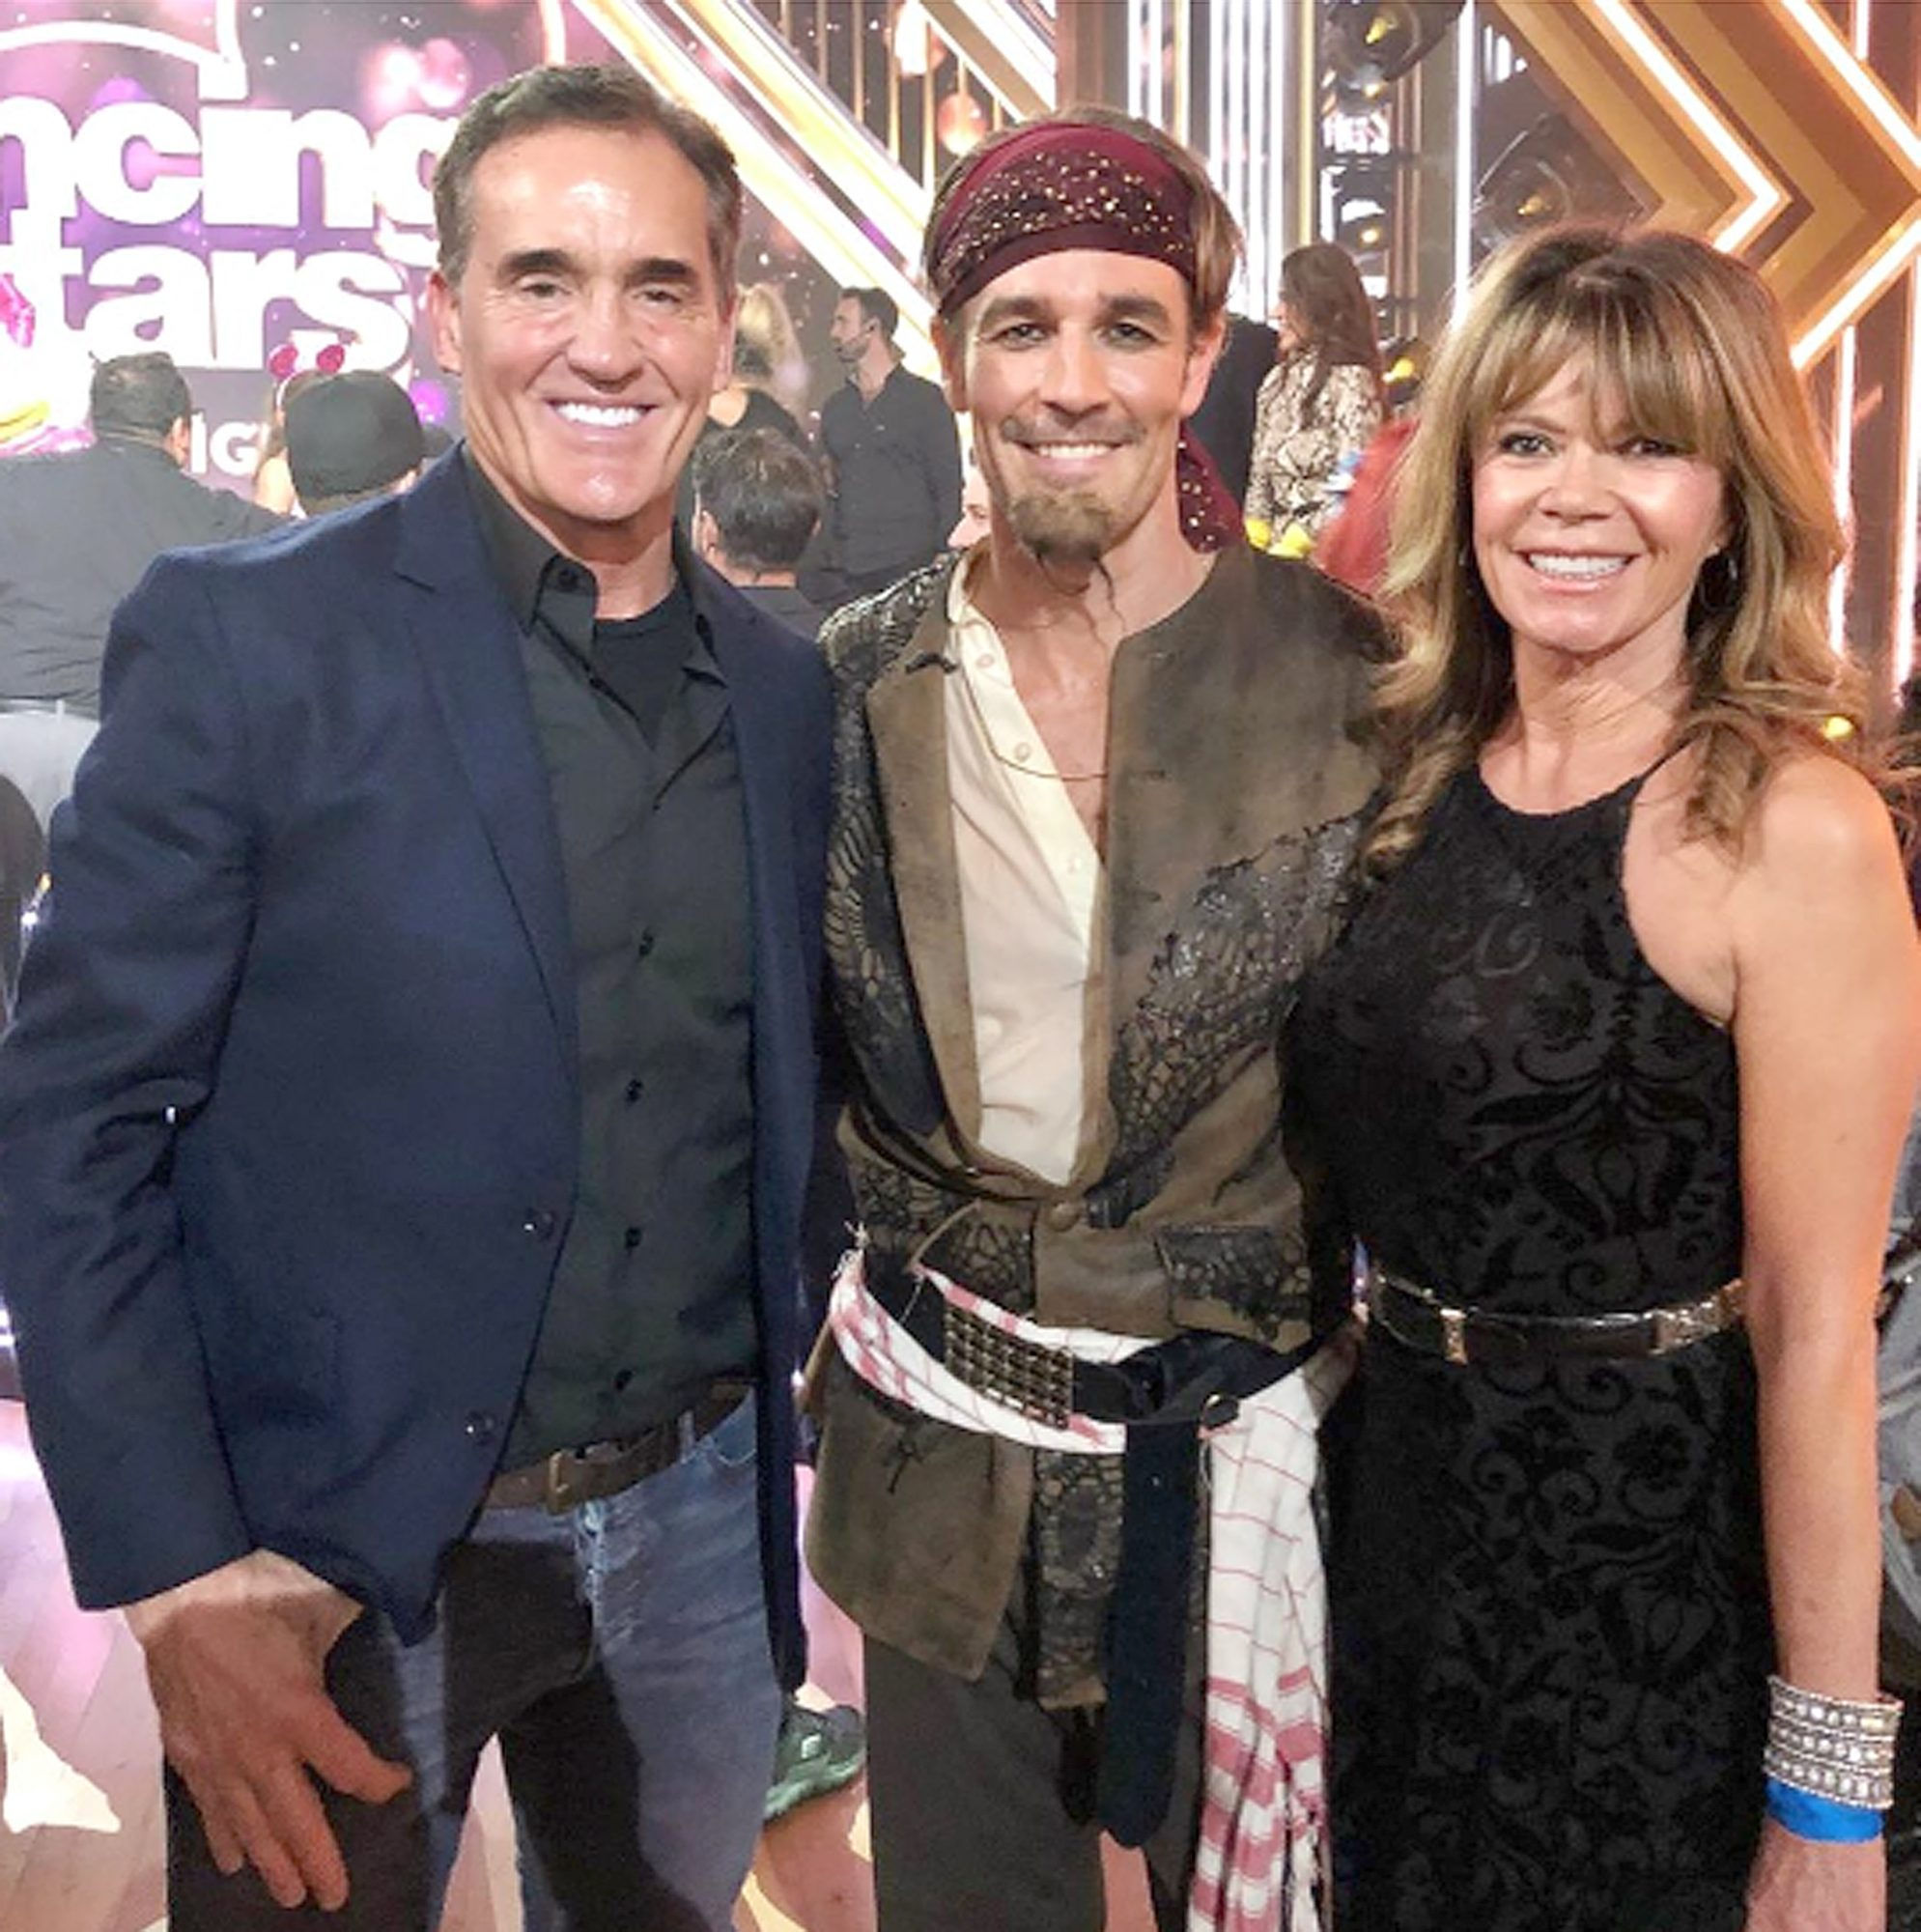 """Mary-Margaret Humes and John Wesley Shipp - who famously portrayed Gail and Mitch Leery, the parents to James Van Der Beek's Dawson Leery on the late '90s teen drama Dawson's Creek -were in the Los Angeles audience of Dancing with the Stars on Oct. 14, 2019, watching their TV son try his hand at the paso doble.                             """"So proud of this one right here!!!"""" the 65-year-old actress wrote on Instagram, captioning the sweet pic. """"Such an awesome night in the ballroom @dancingabc with @vanderjames ❤️.""""                             """"This is the first picture of the three of us together in 18 years!!!"""" she added, alongside the hashtags """"#dawsoncreek #dwts #foreverfriends #family is everything!!!"""""""